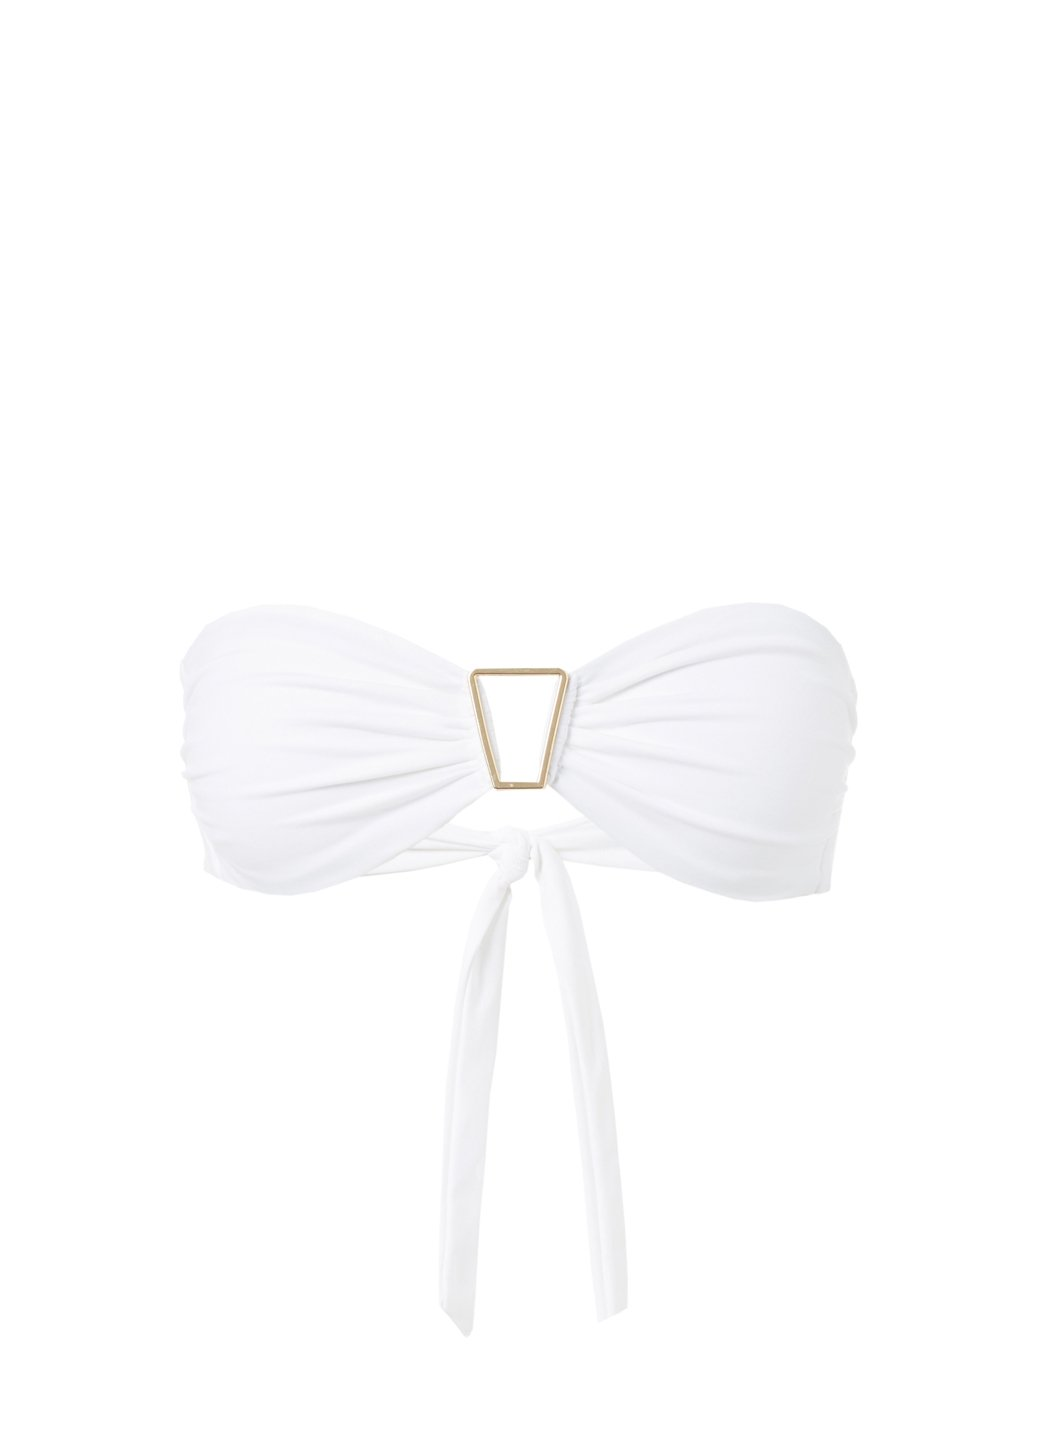 Barcelona White Bandeau Triangle Trim Bikini Top